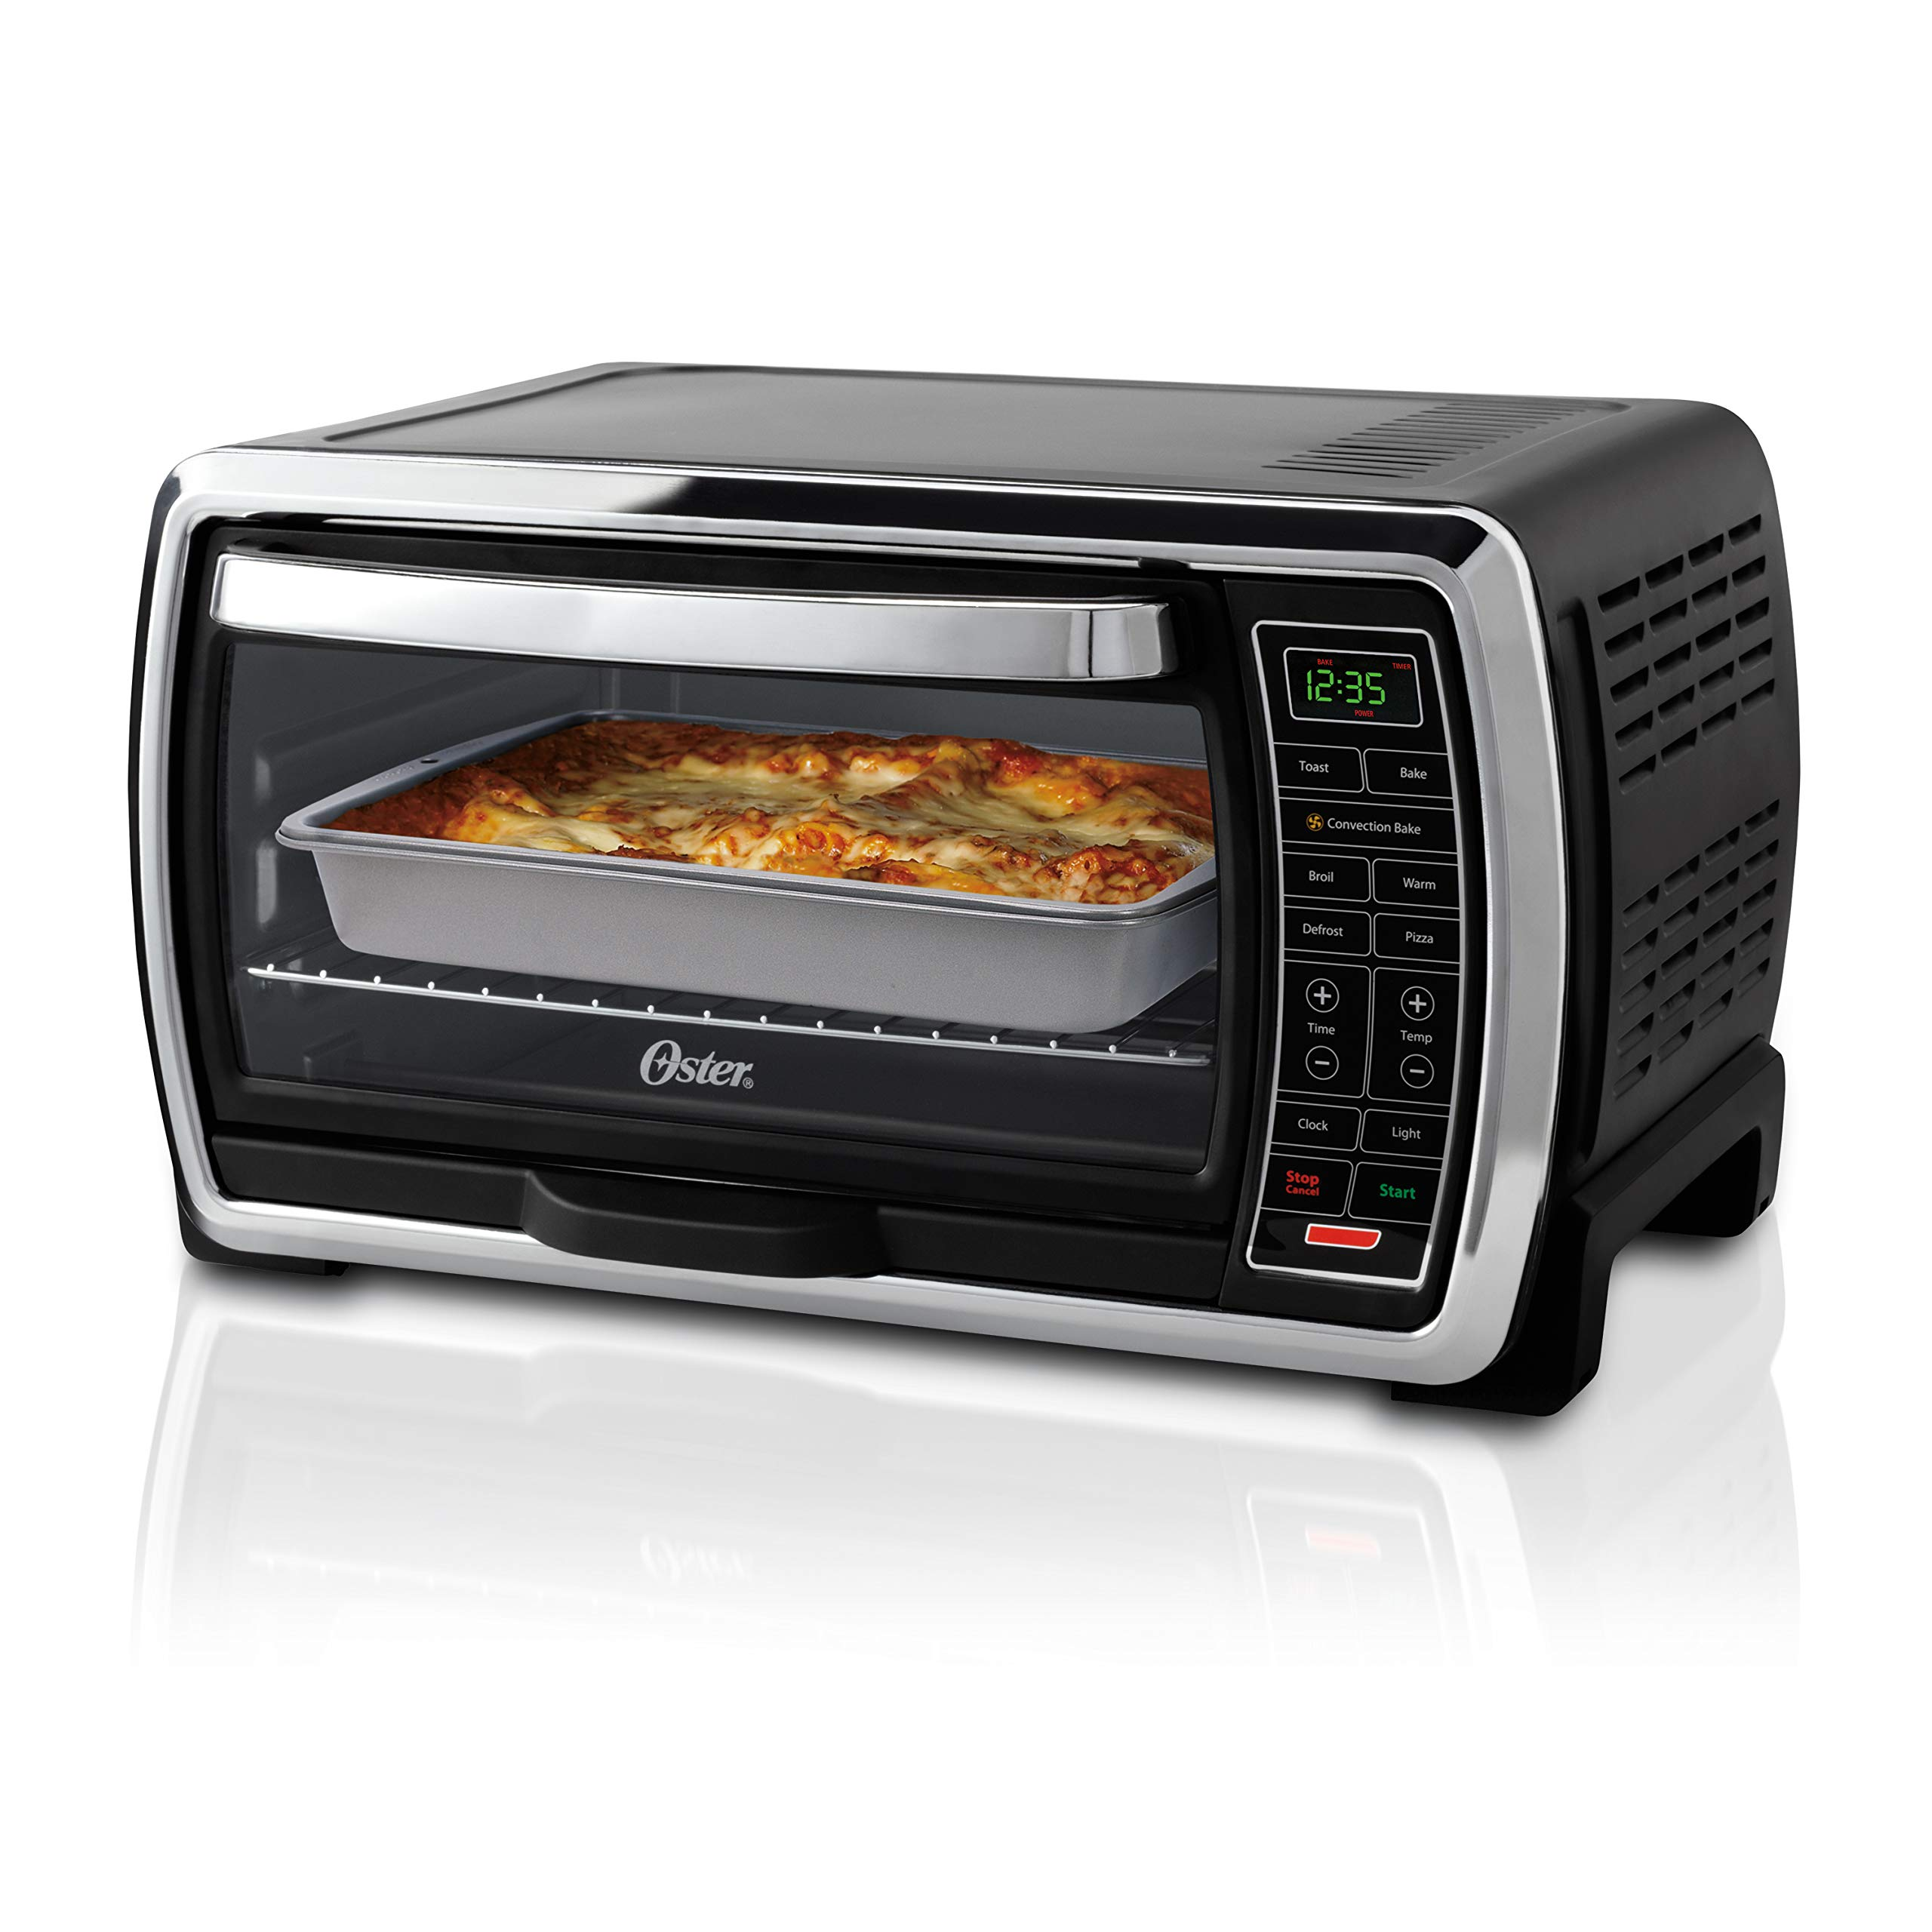 Oster Toaster Oven | Digital Convection Oven, Large 6-Slice Capacity, Black/Polished Stainless by Oster